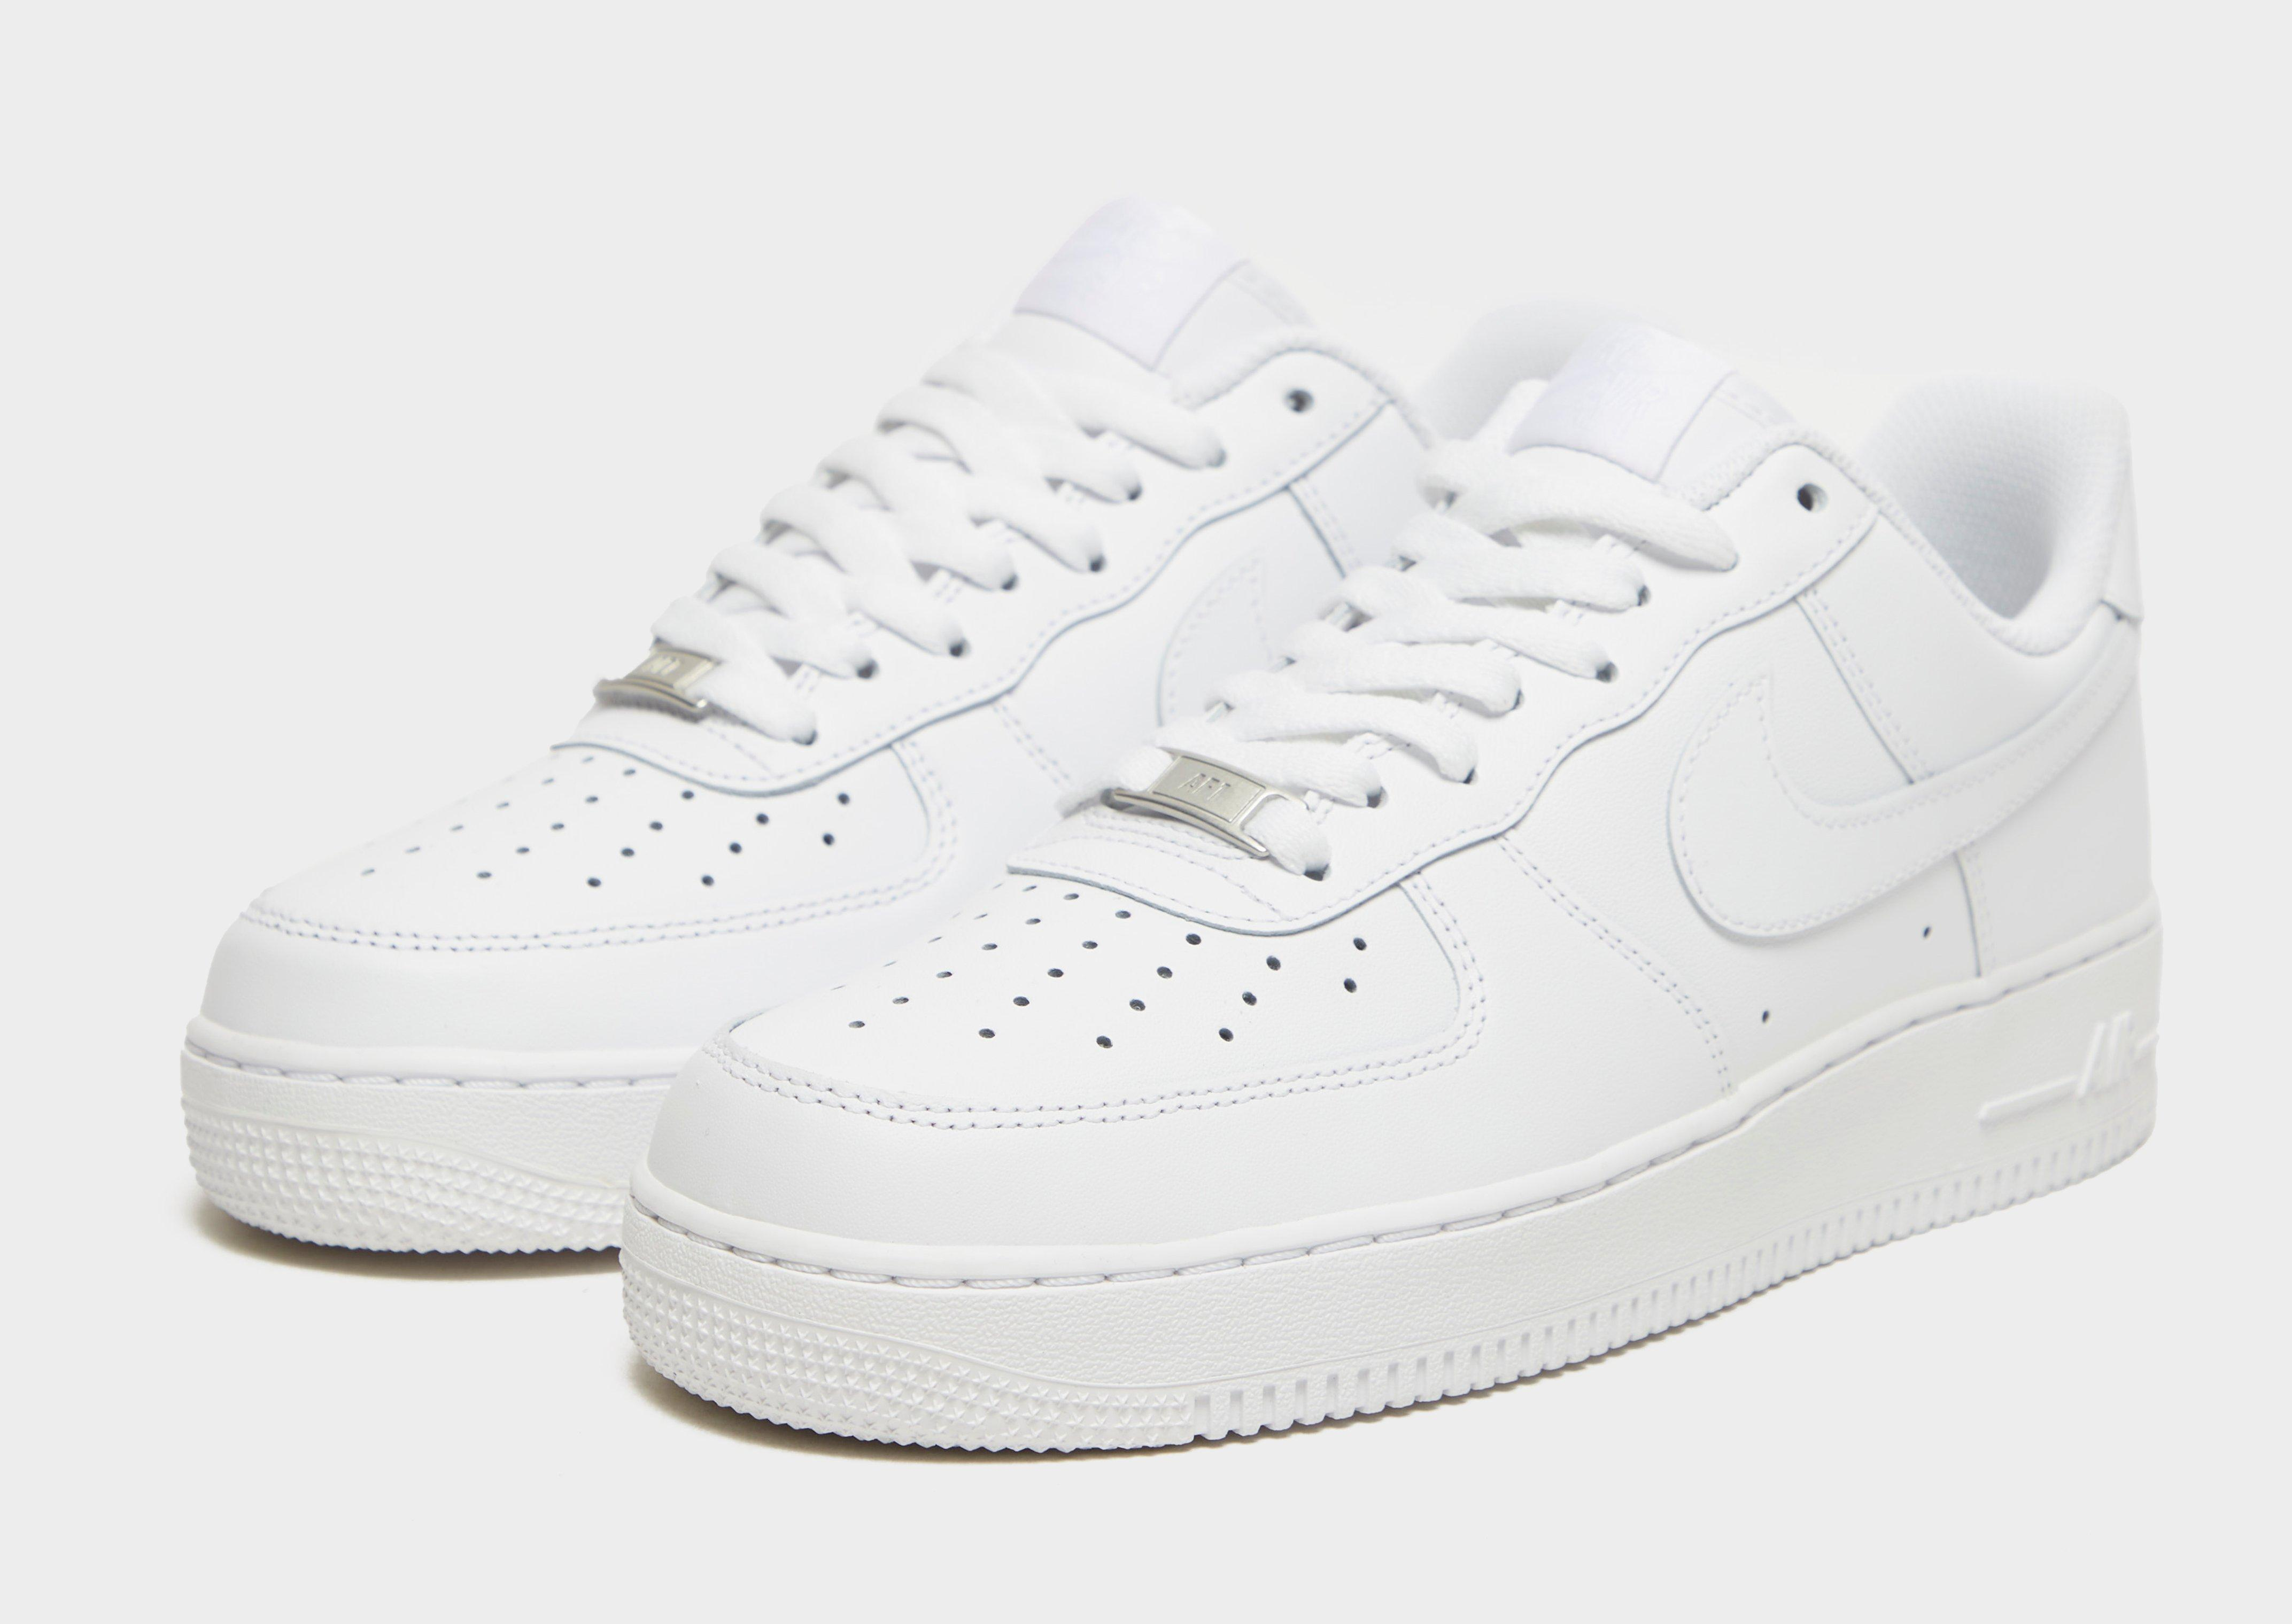 Nike Air Force 1 Low | JD Sports Ireland